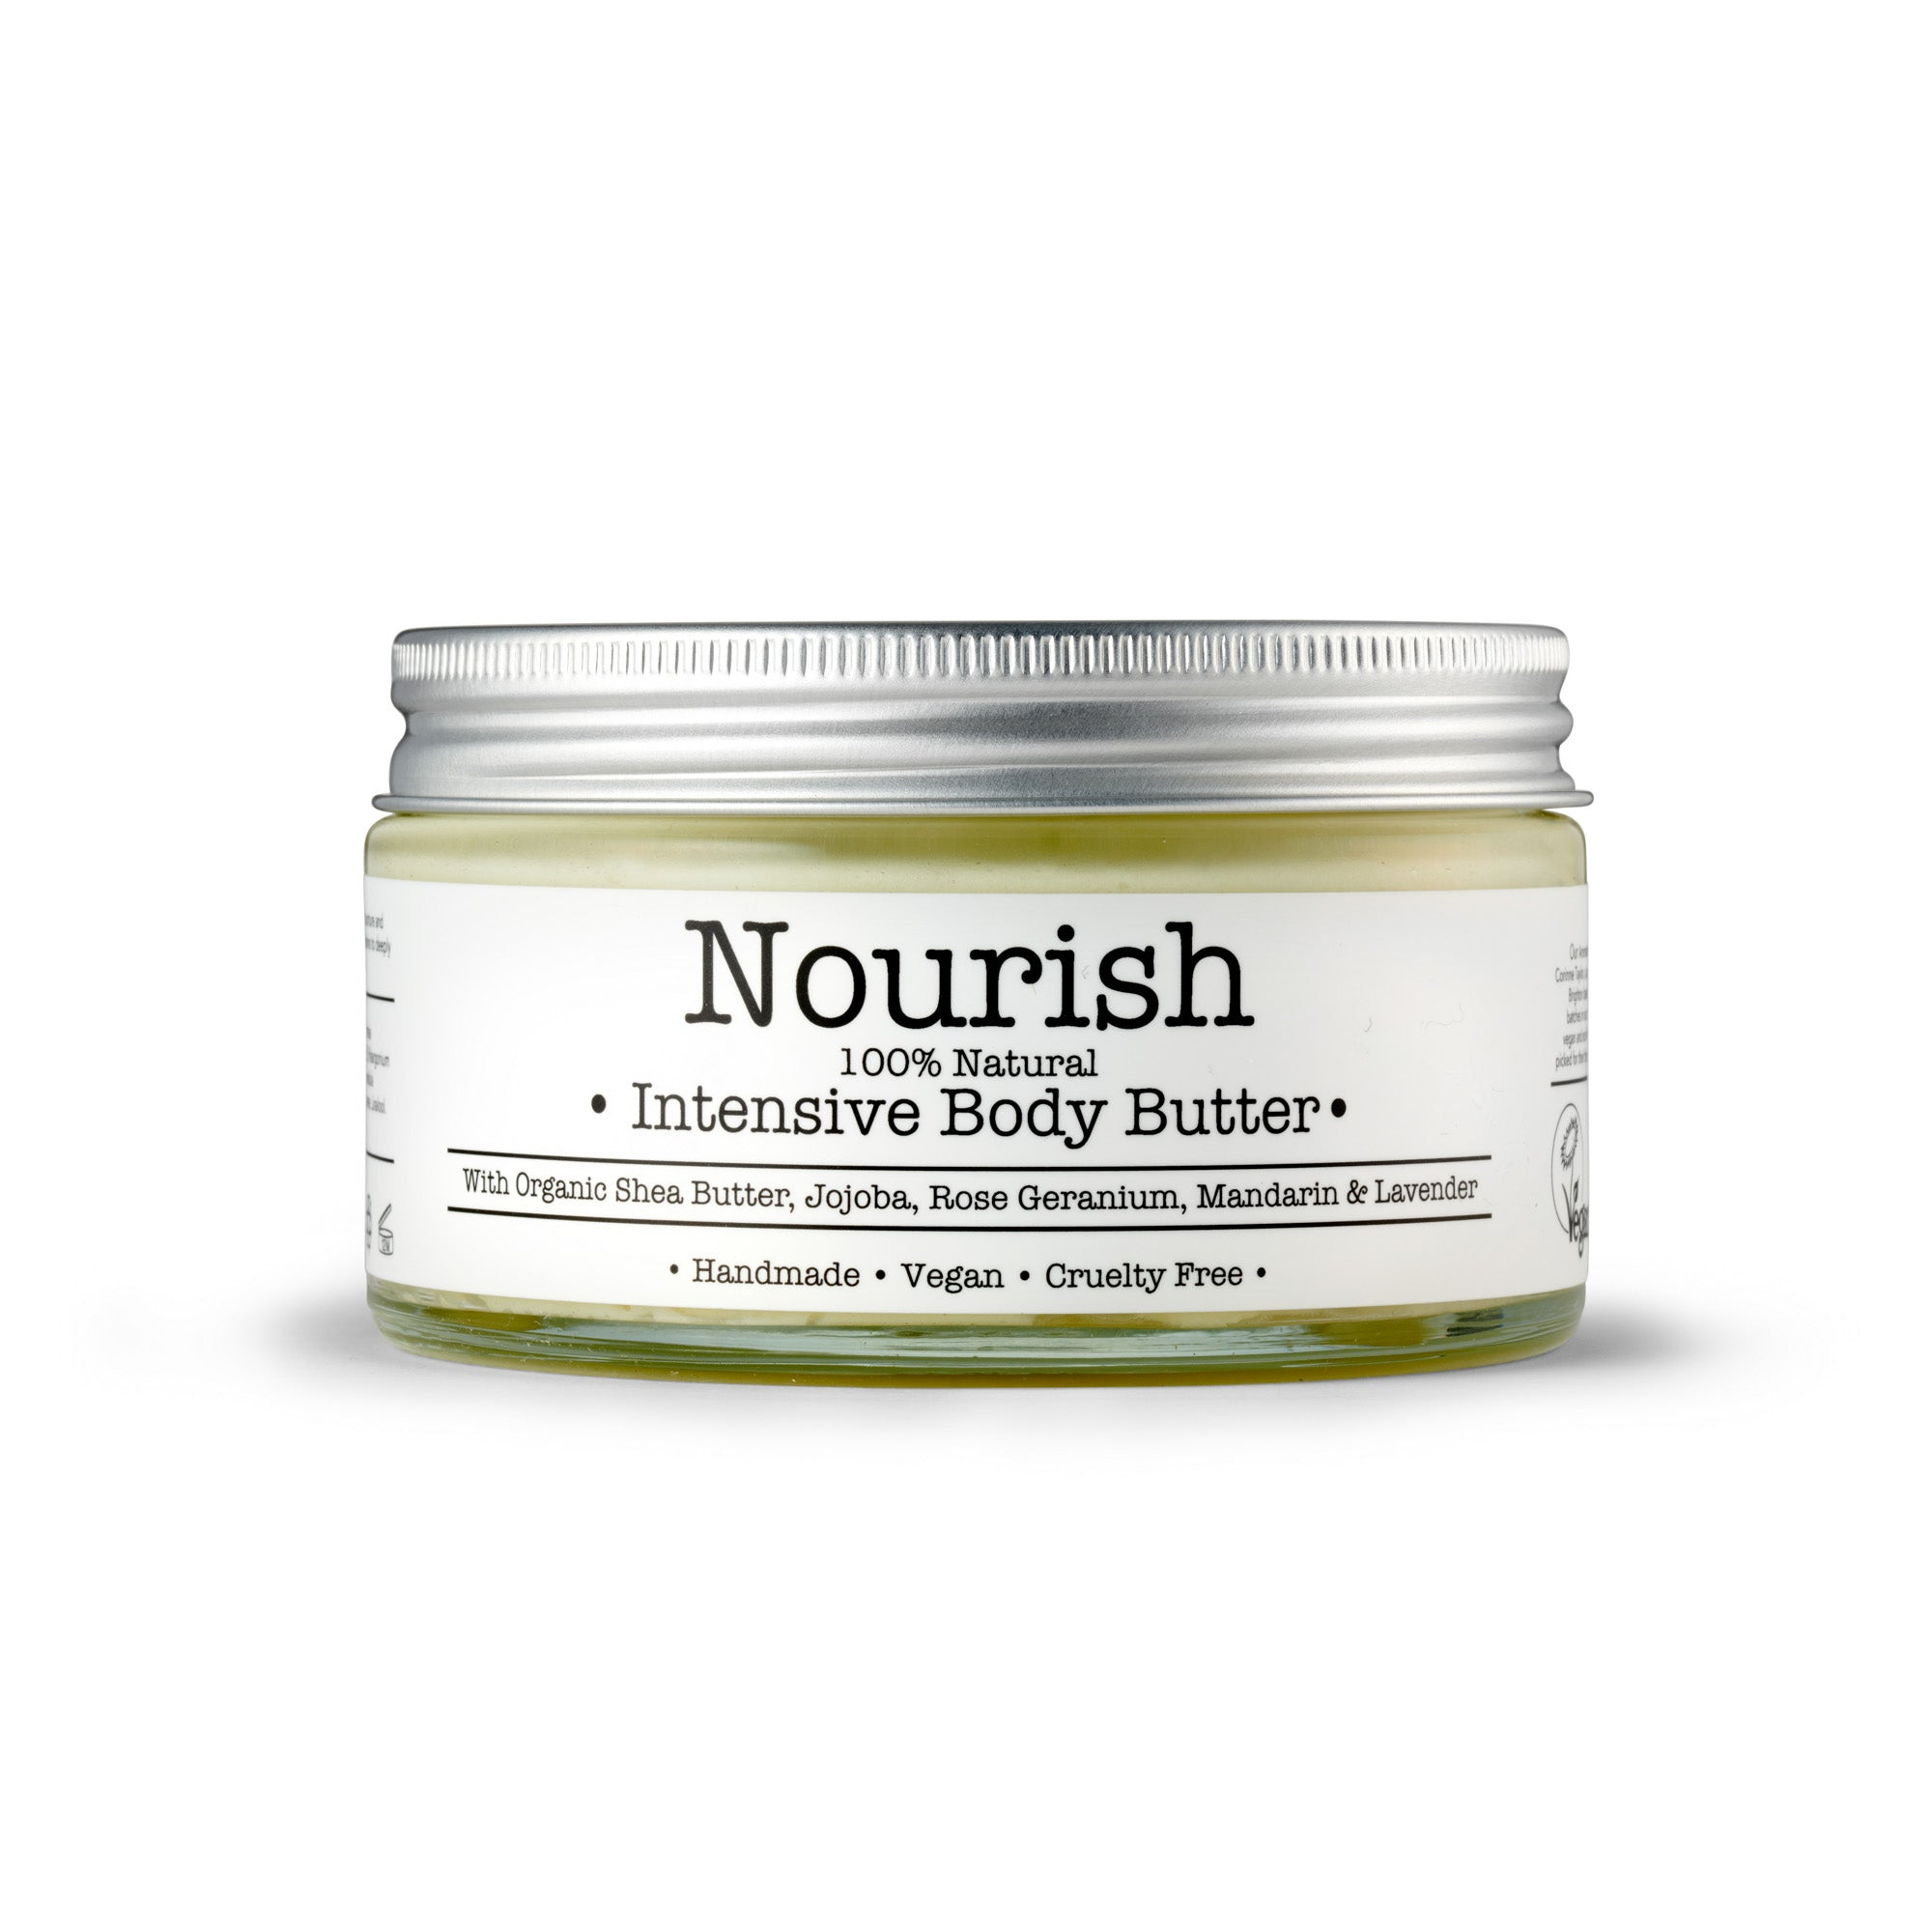 Nourish Organic Body Butter by Corinne Taylor. 100% natural, vegan, plant based, cruelty free. Made with soothing and hydrating Shea Butter, Coconut Oil and restorative Avocado and Jojoba Oils and a blend of organic Rose Geranium, Tangerine & Lavender Essential Oils.